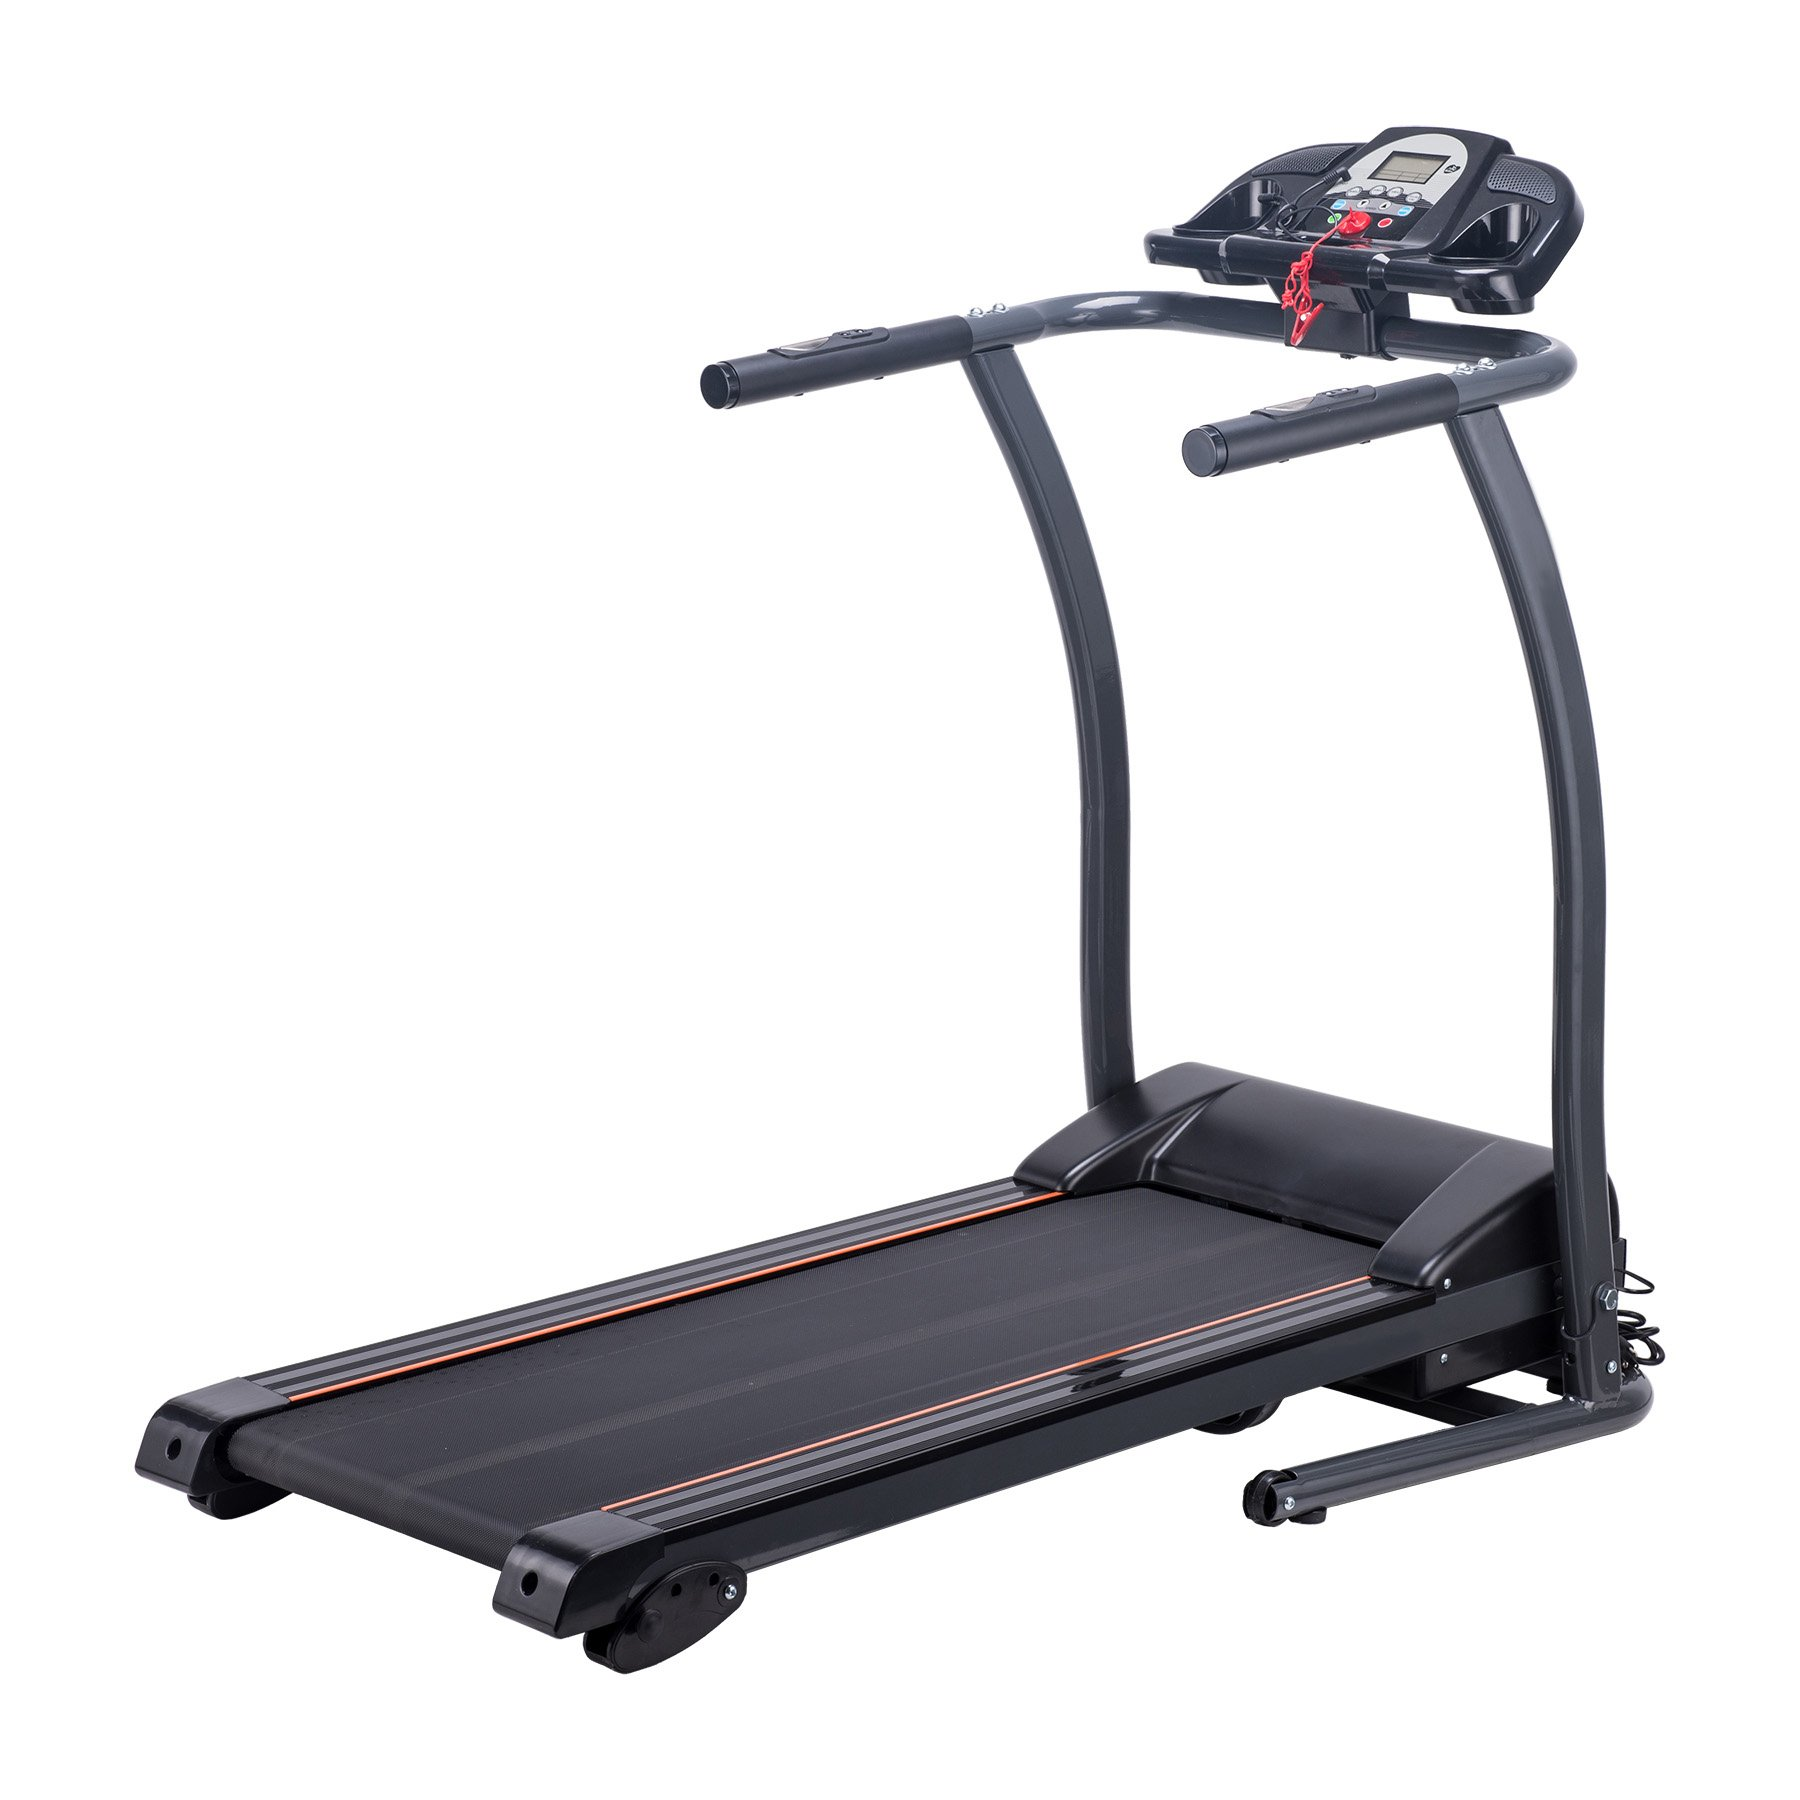 Pinty Folding Treadmill Incline Motorized Running Machine for Home with LED Display, MP3 Player, Emergency Stop, Miles Track by Pinty